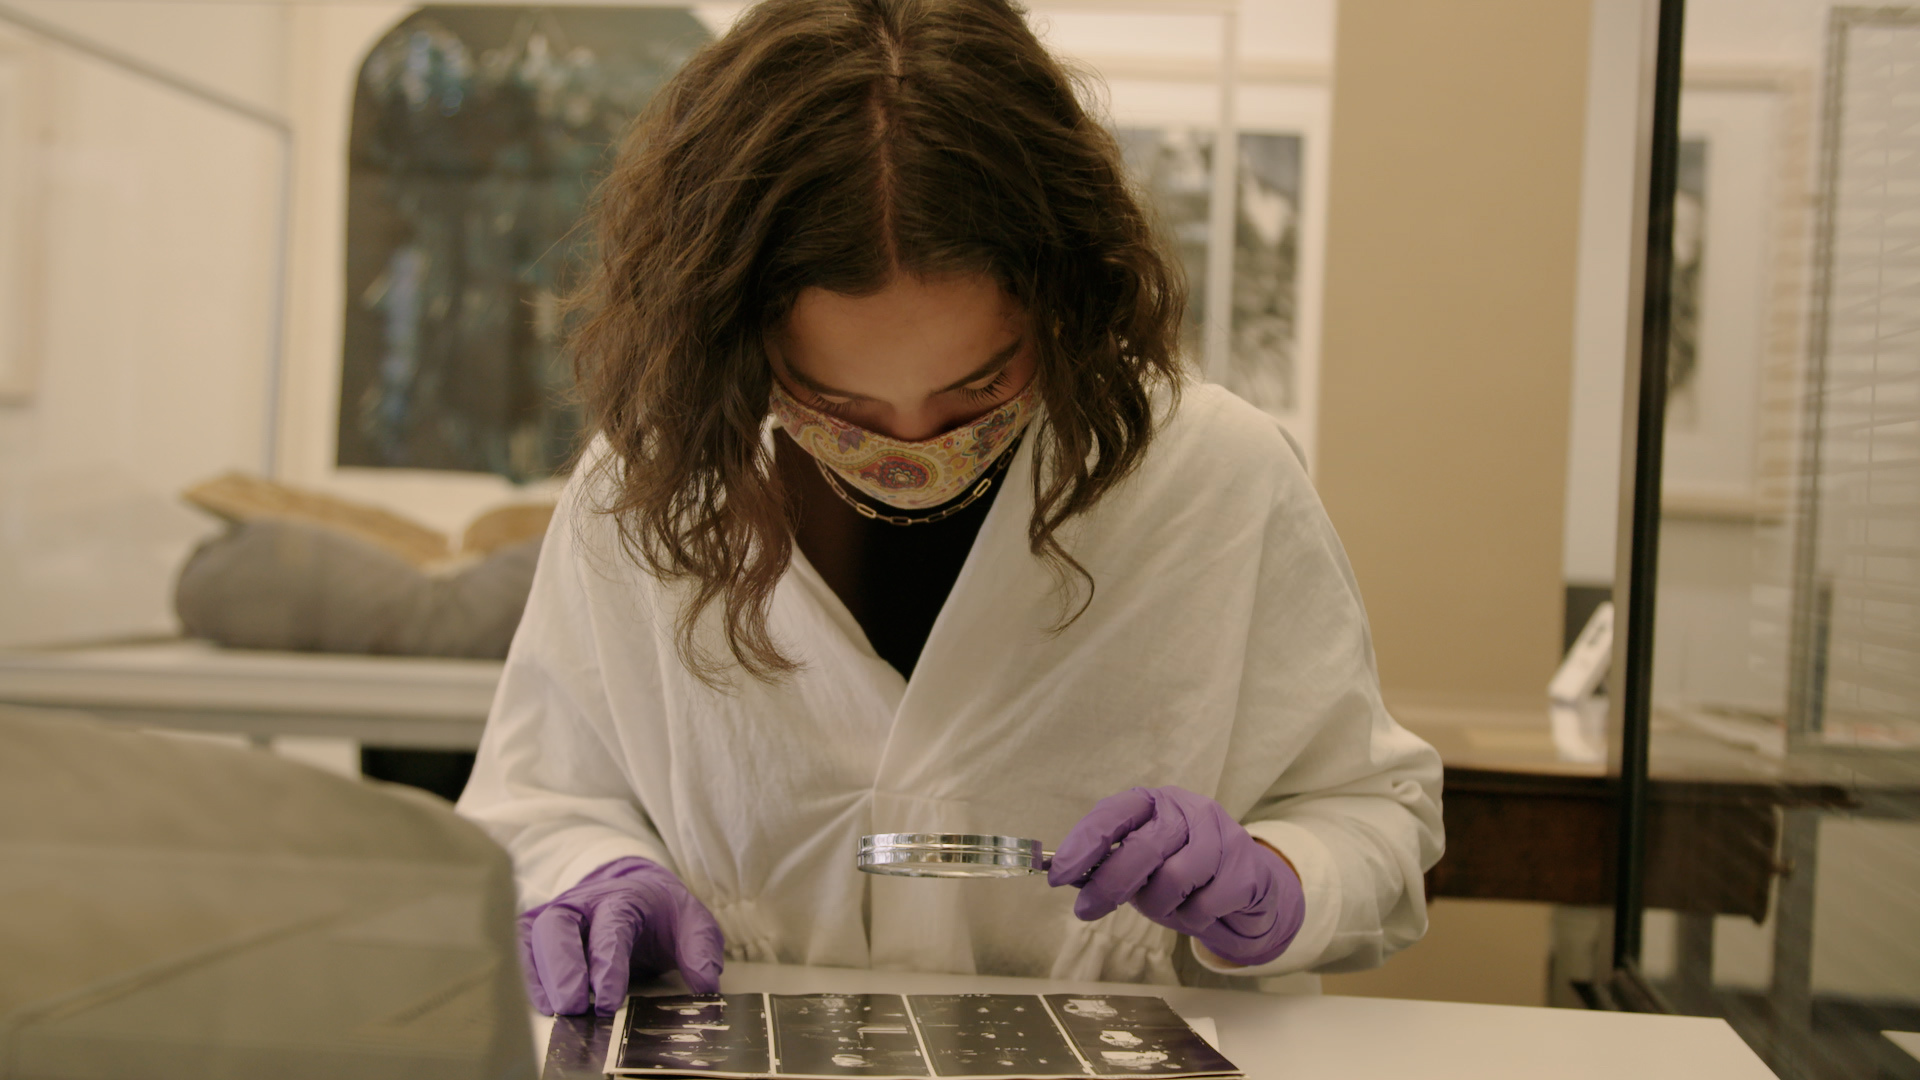 A female intern dressed in a lab coat, gloves and goggles uses a magnifying glass to look at photo negatives in the archive